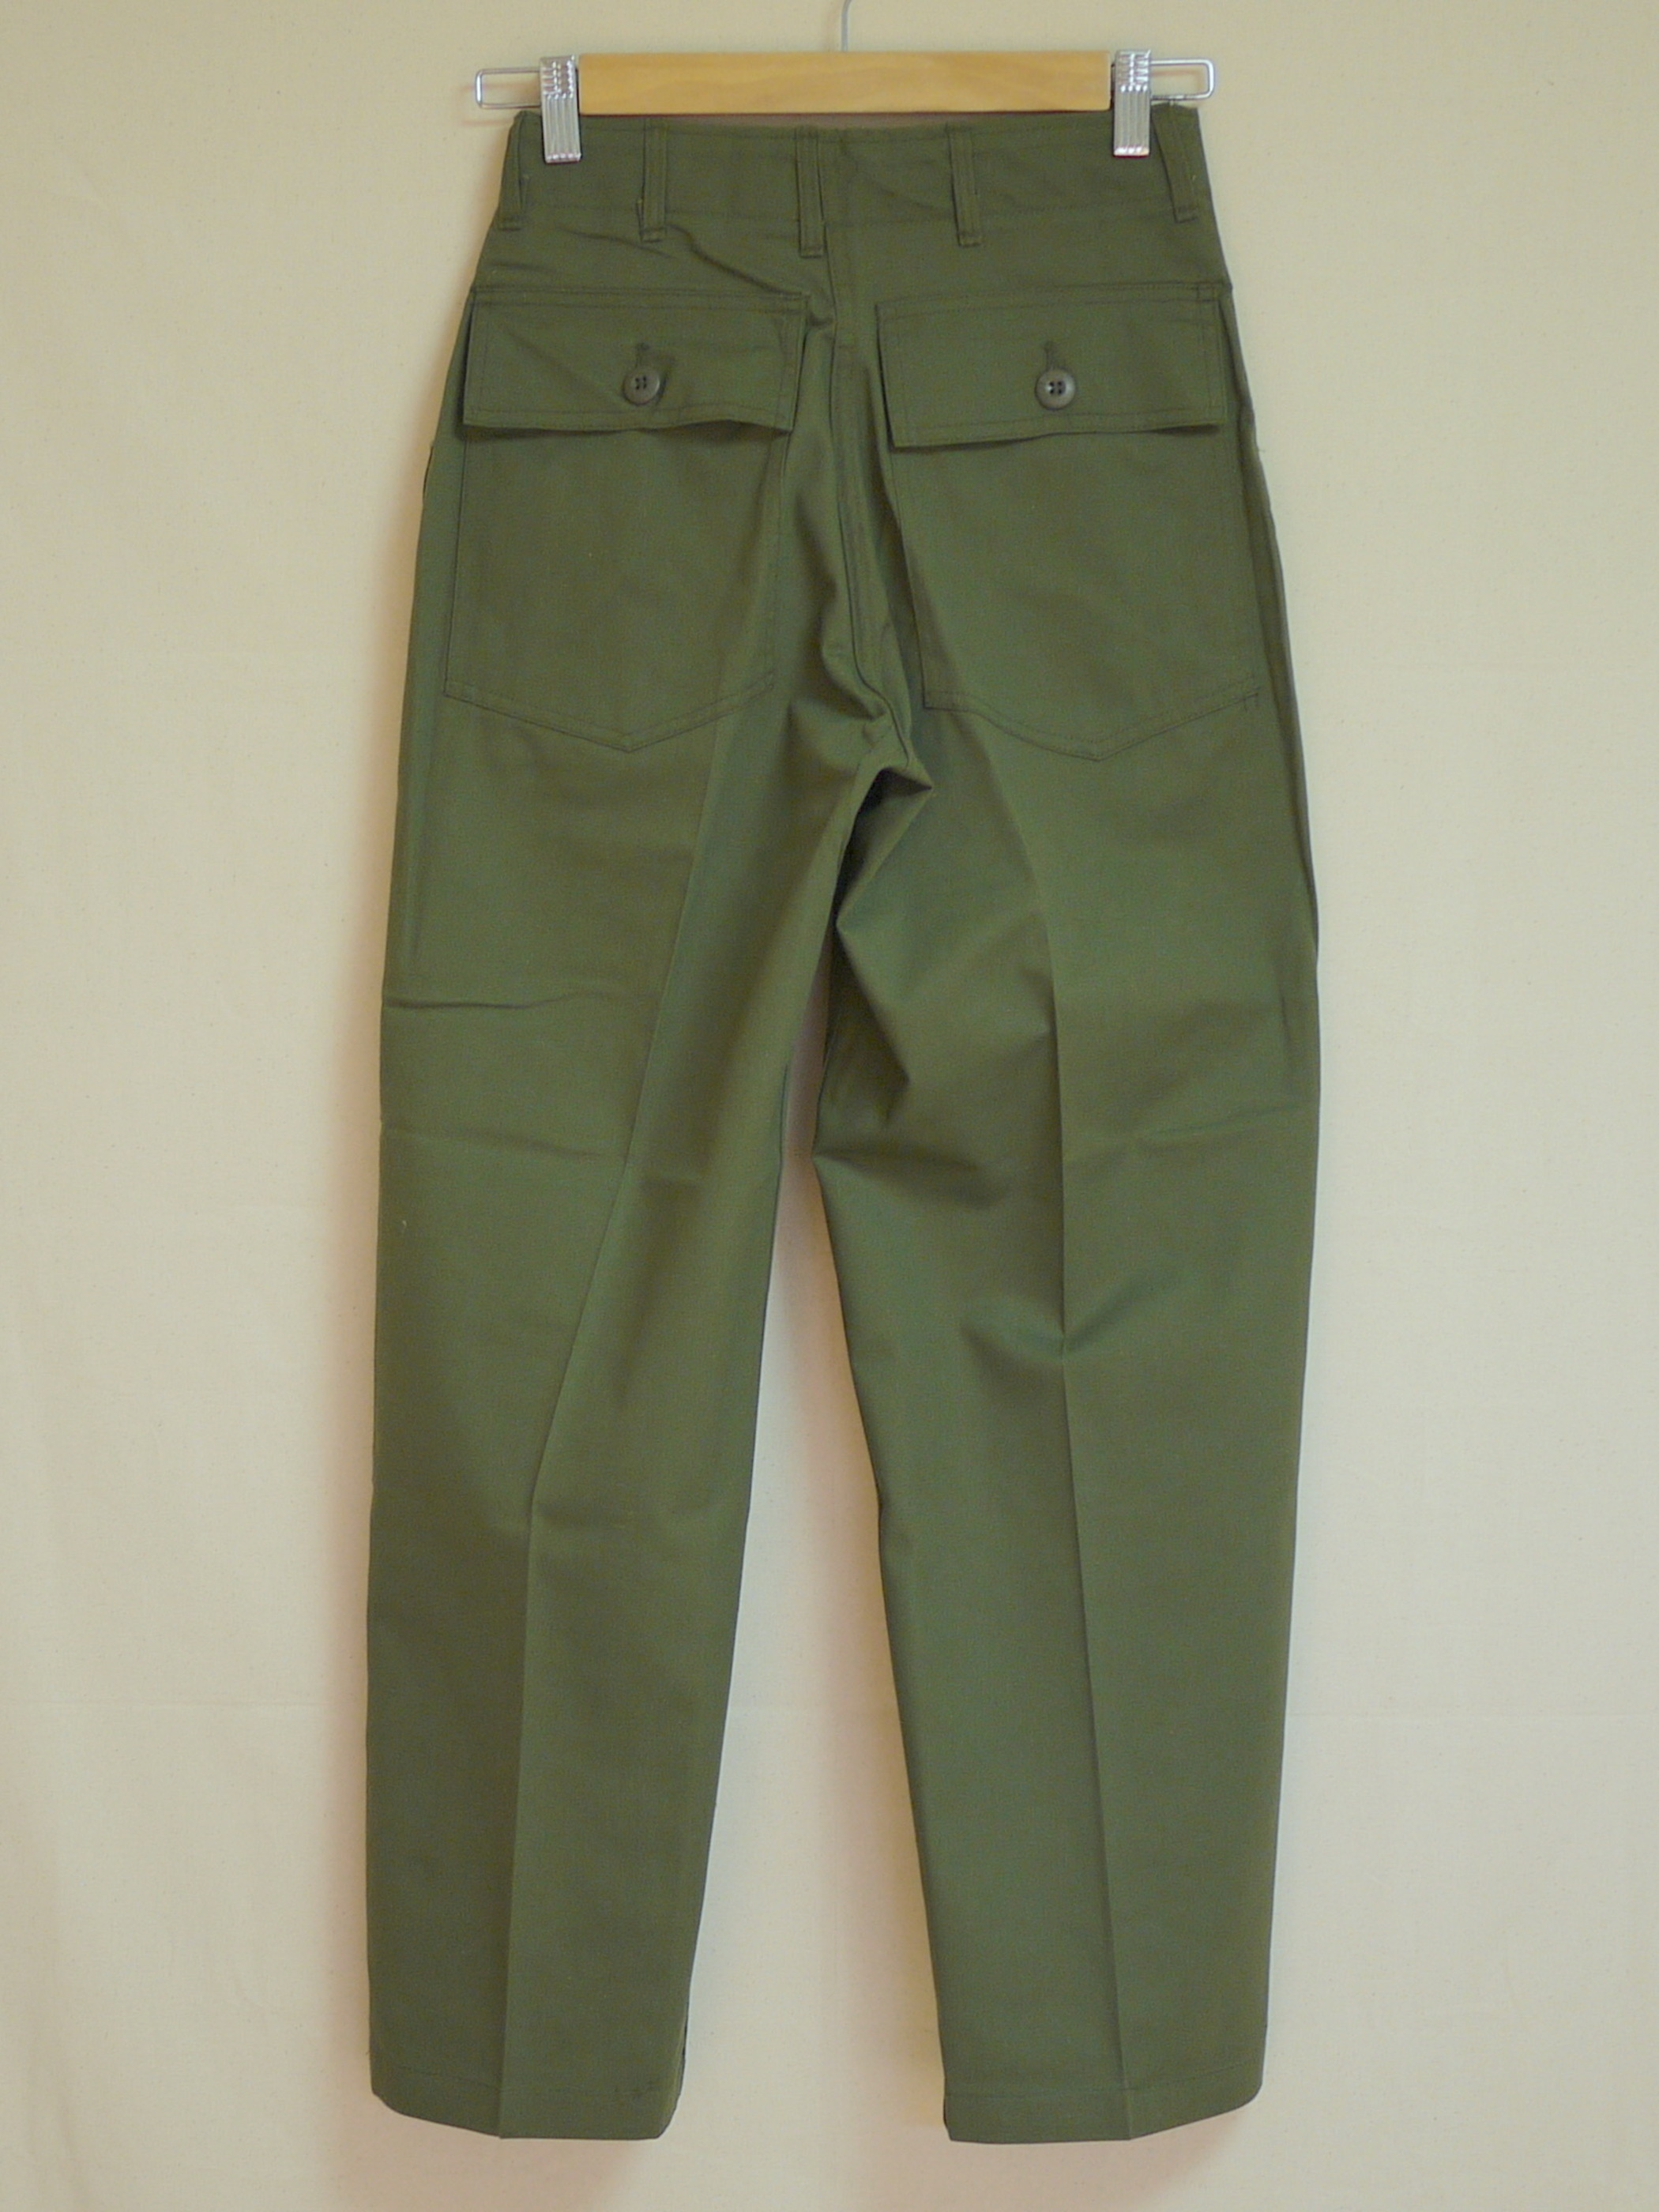 "U.S.Military 1970's OG507 Utility Trousers W28L27 ""Dead stock"""